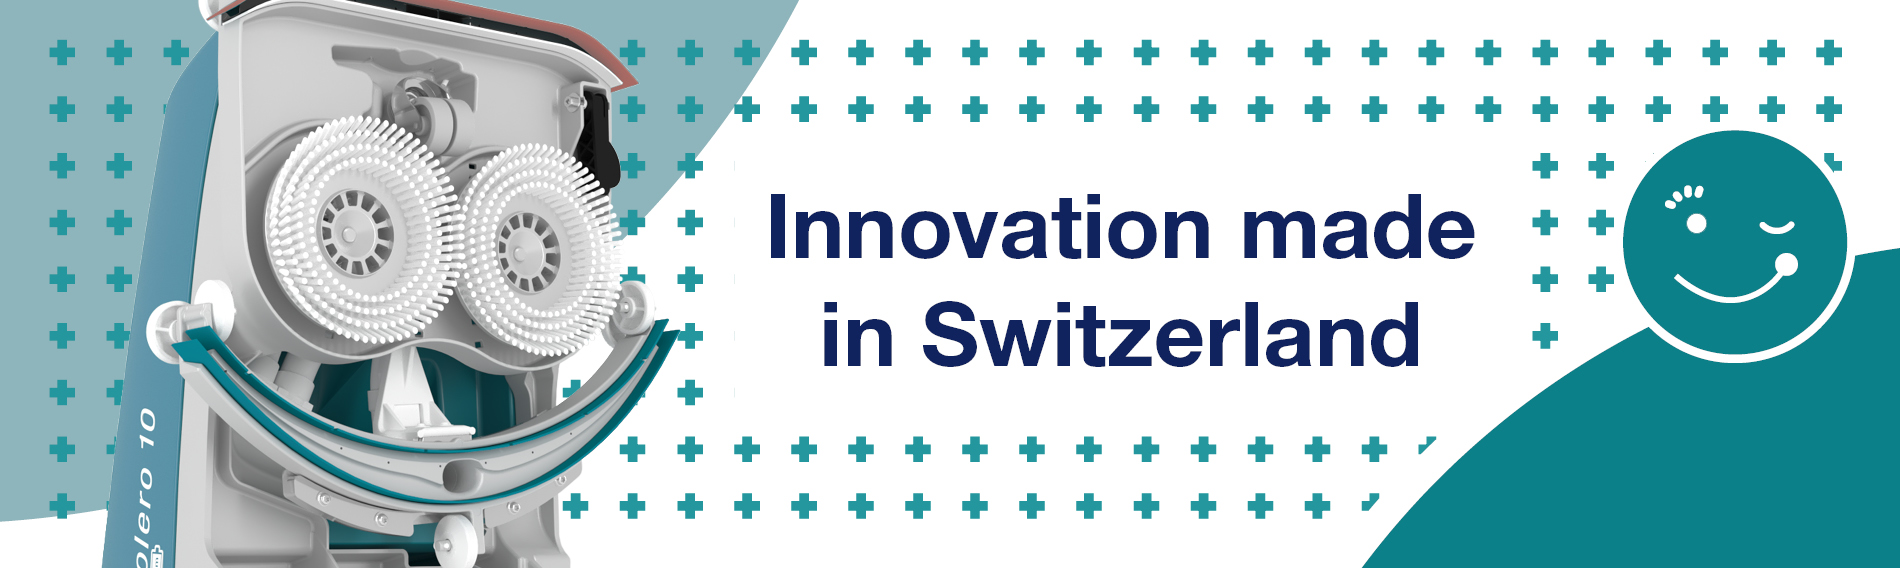 Innovation made in Switzerland